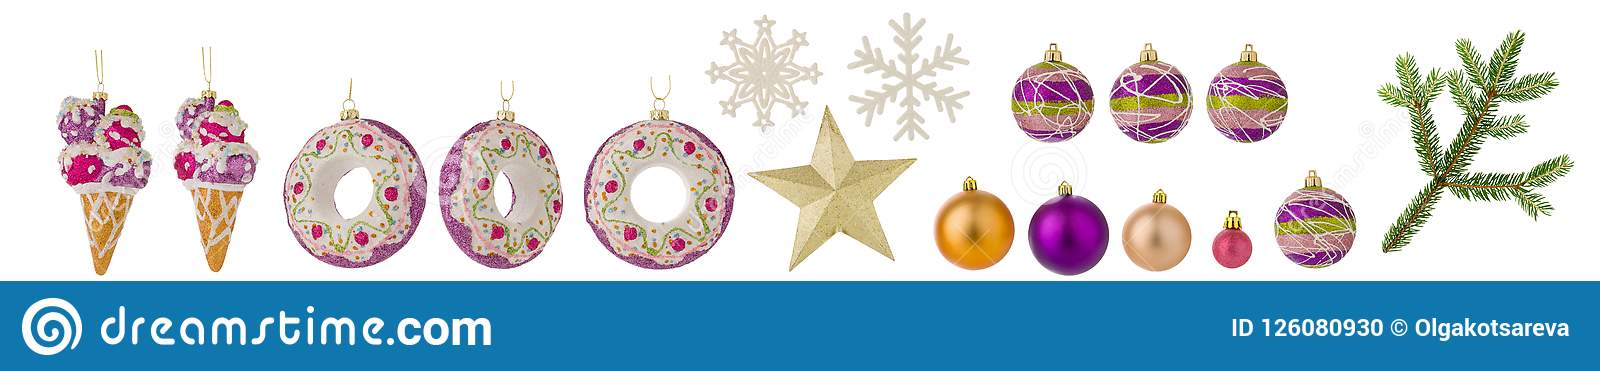 Set of Christmas toys isolated on white background. Balls, spruce branch, snowflakes and other toys as clipart for design